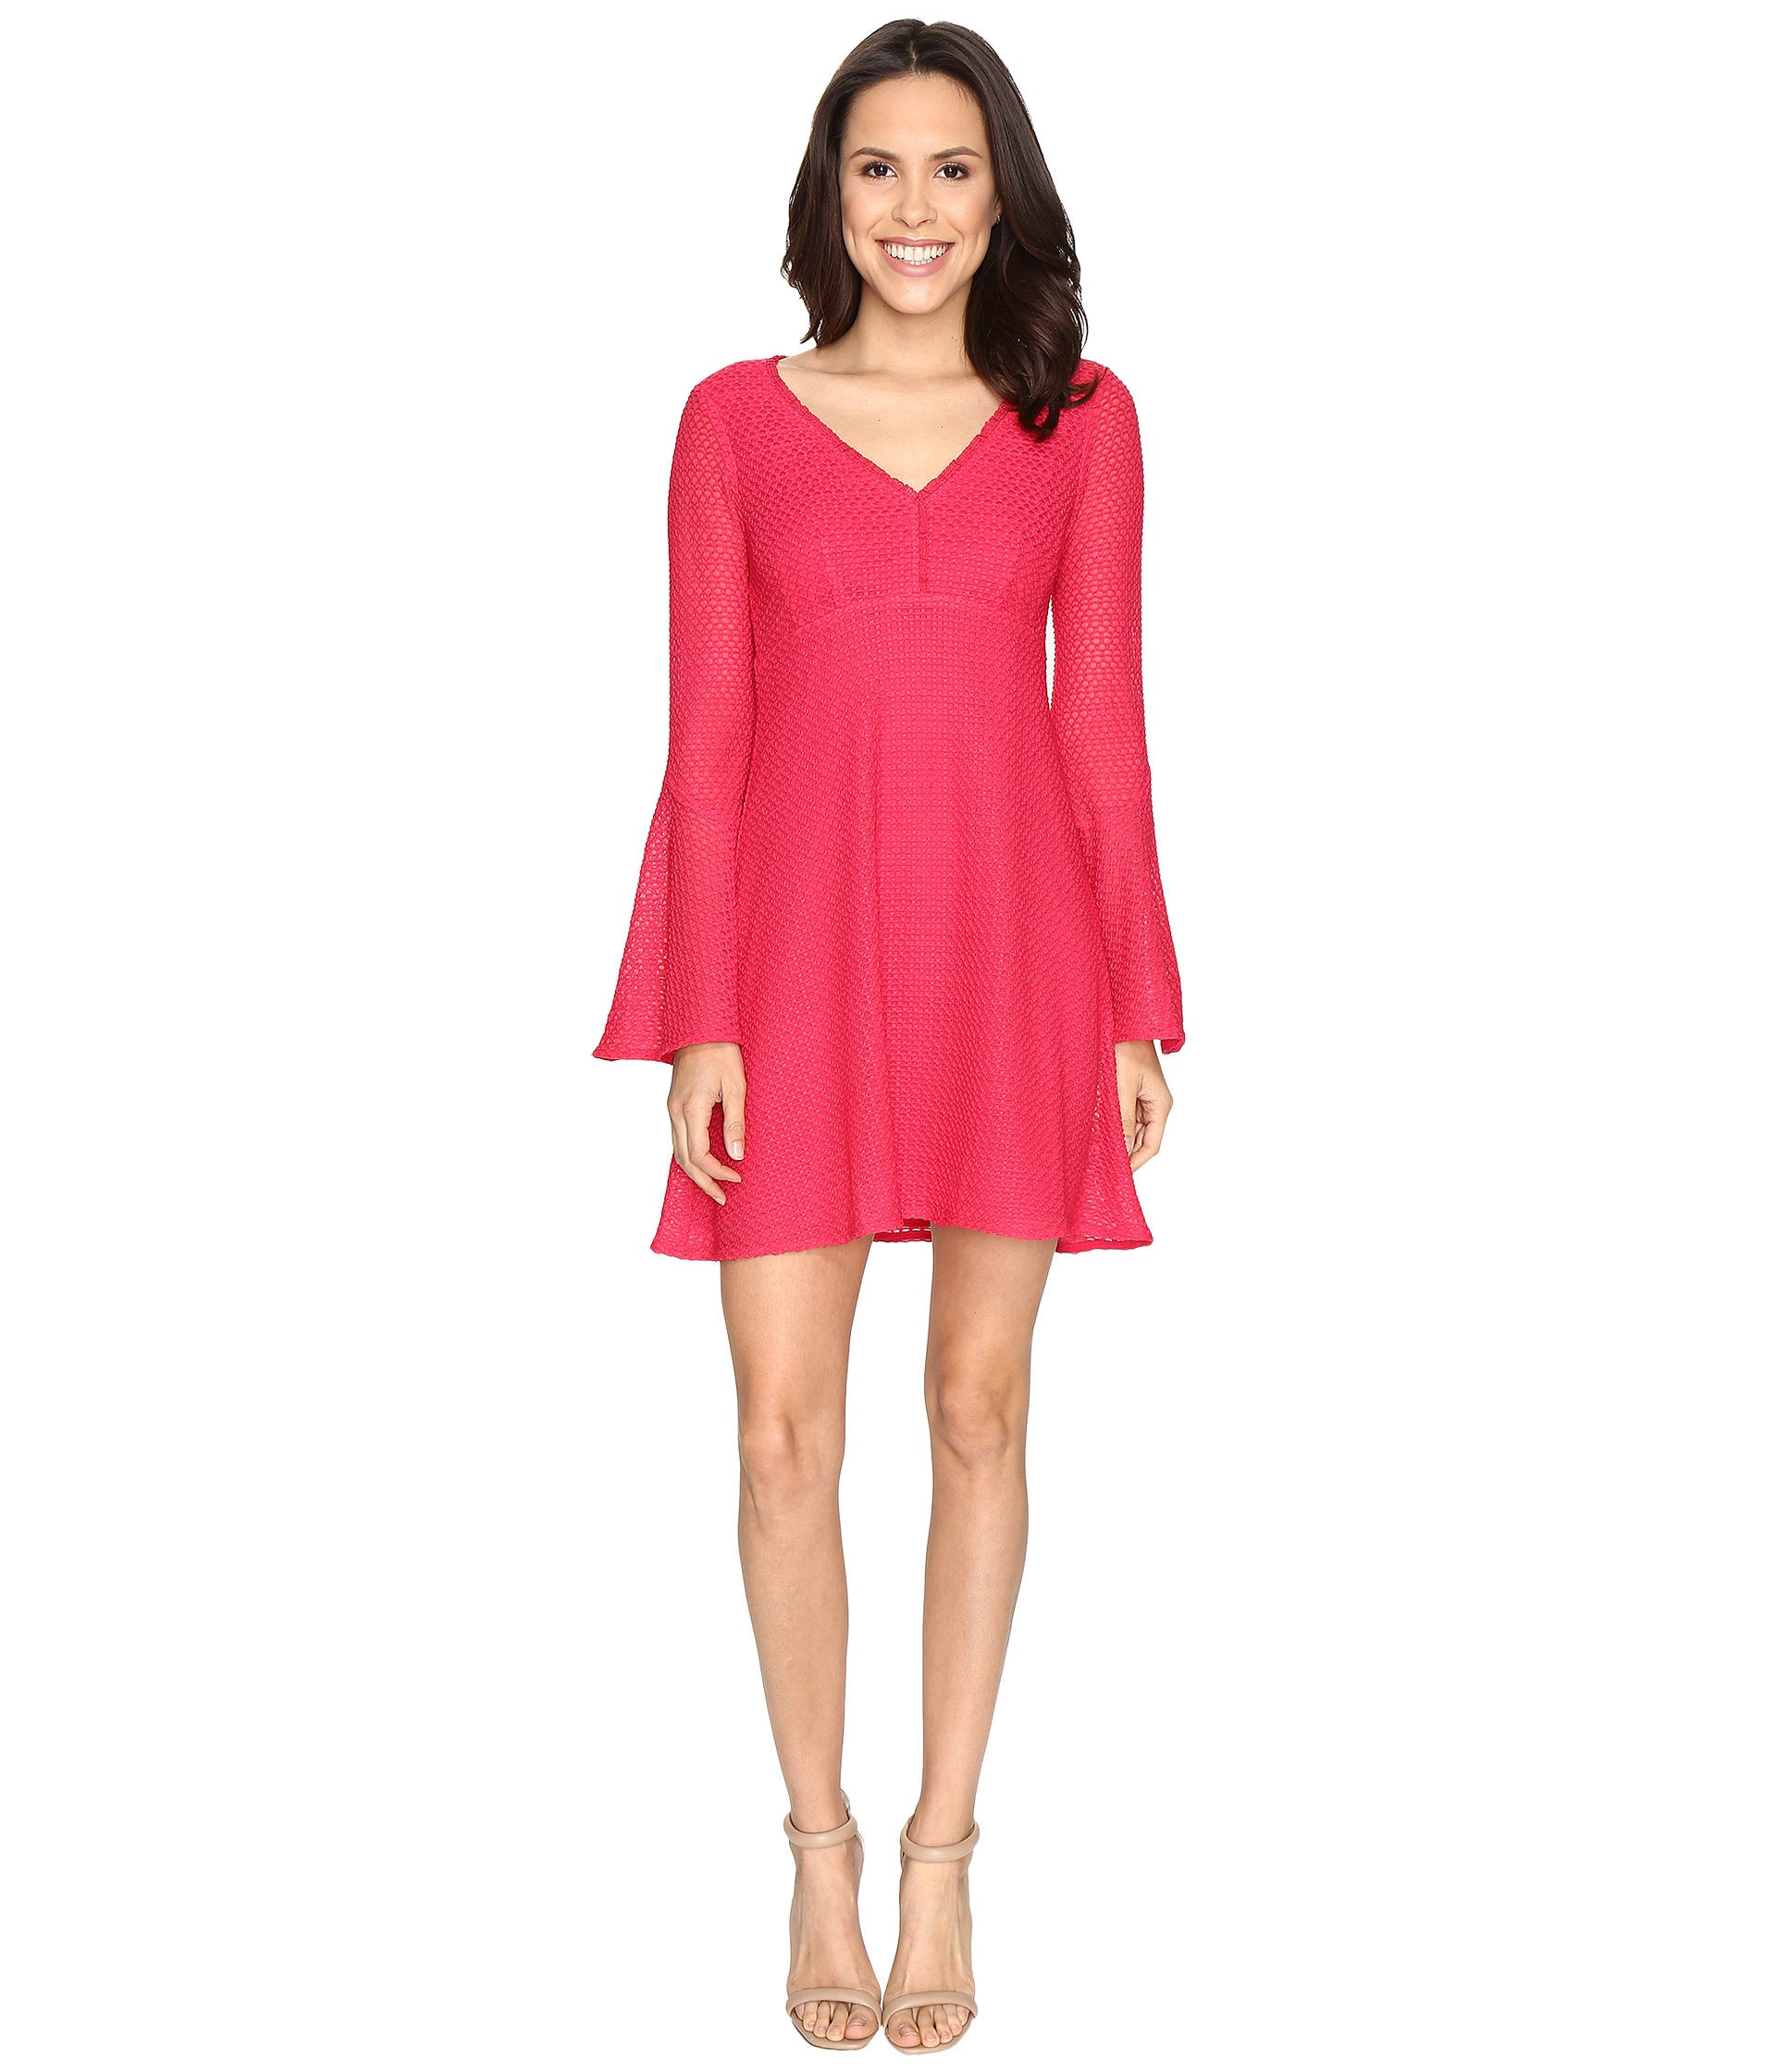 Summer dress sale clearance zappos - Style dresses magazine